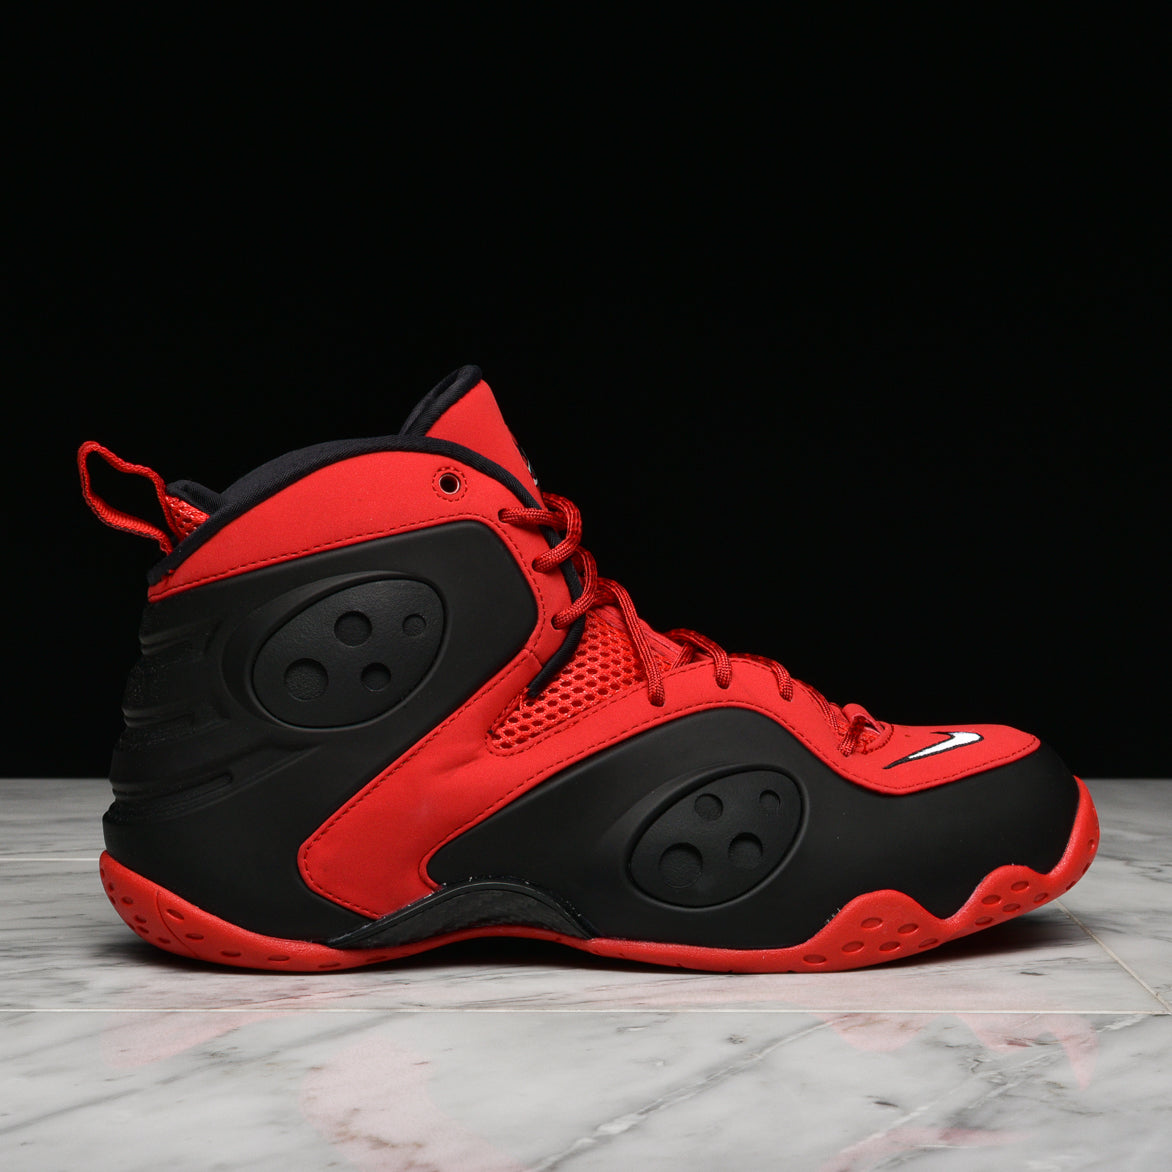 new product f5f2c eba5f ZOOM ROOKIE - UNIVERSITY RED   BLACK   lapstoneandhammer.com